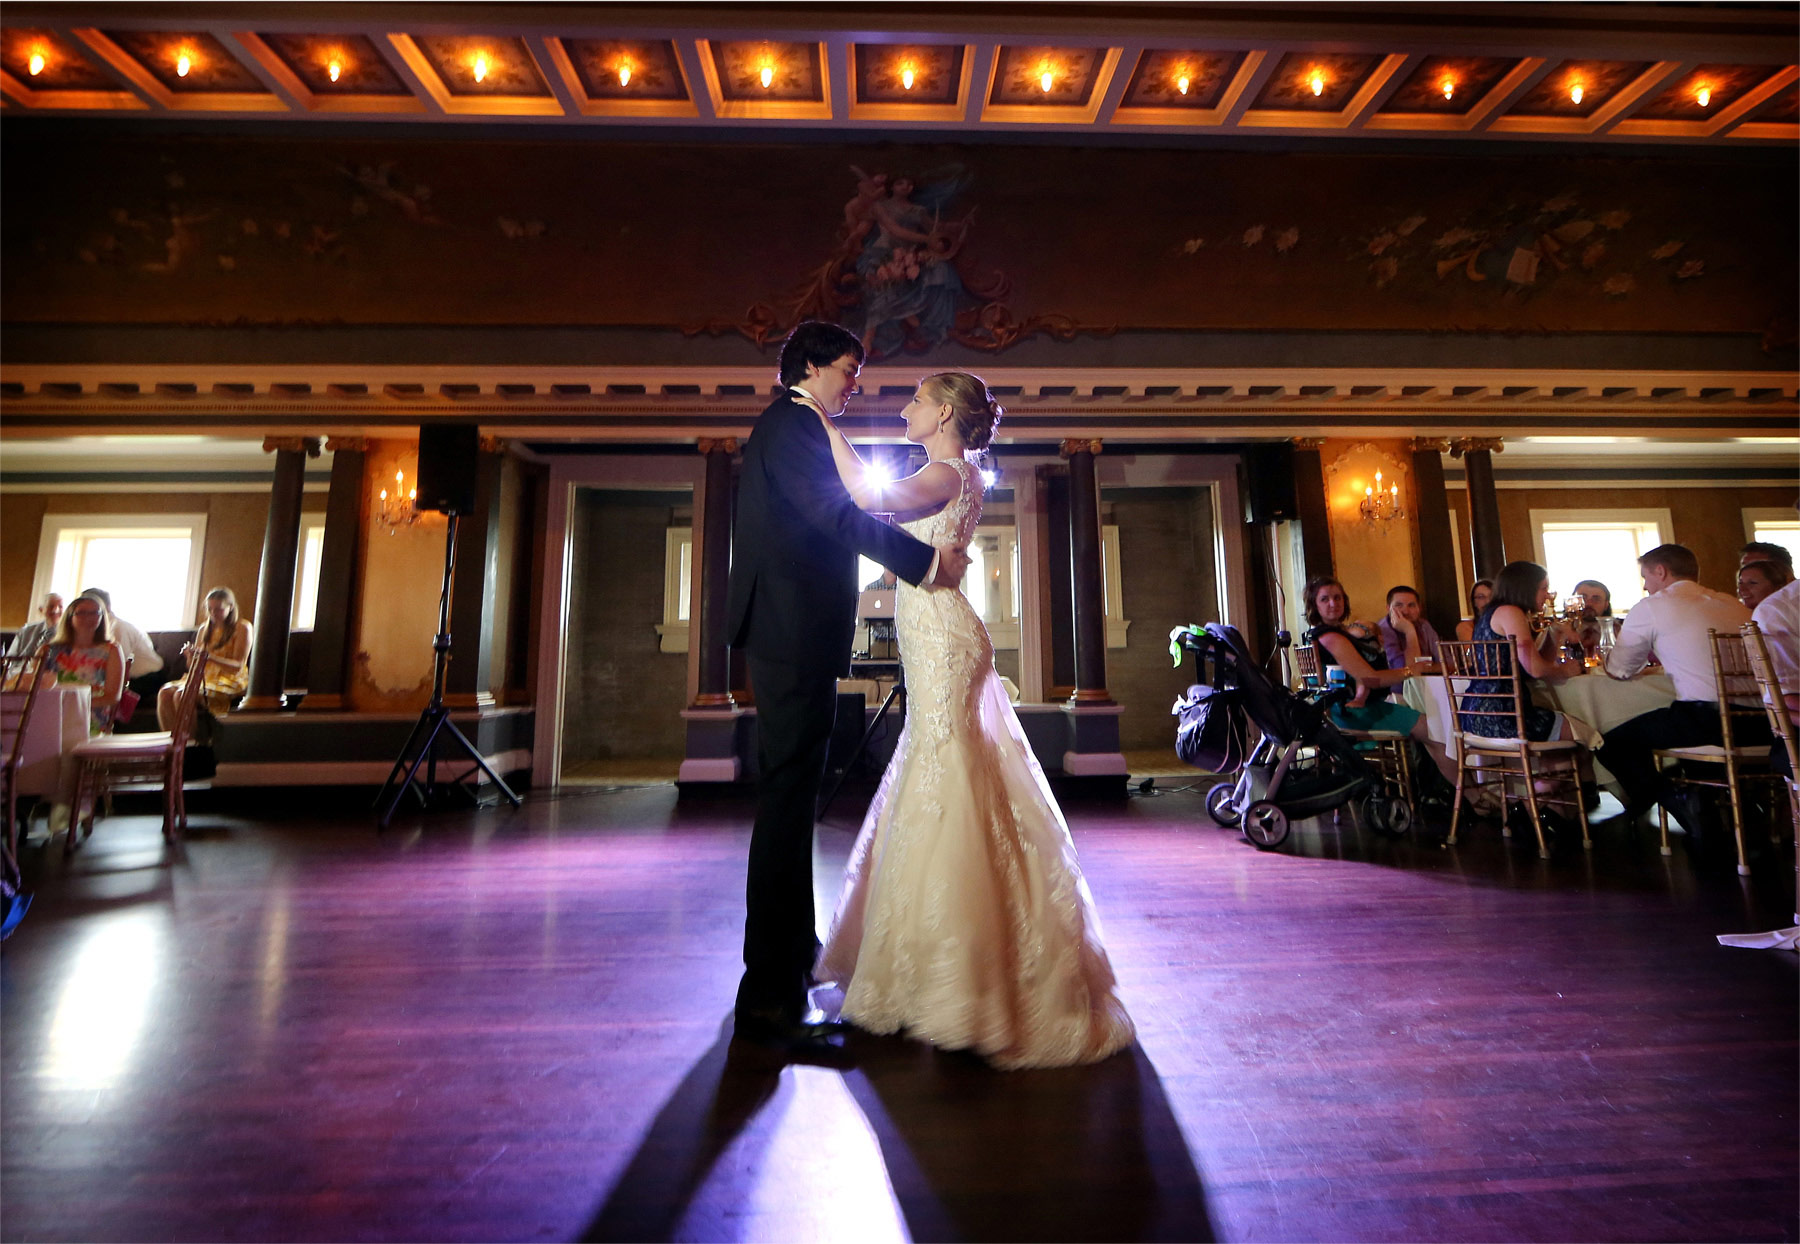 19-Minneapolis-Minnesota-Wedding-Photographer-by-Andrew-Vick-Photography-Summer-Semple-Mansion-Reception-Bride-Groom-Dance-Stephanie-and-Brady.jpg